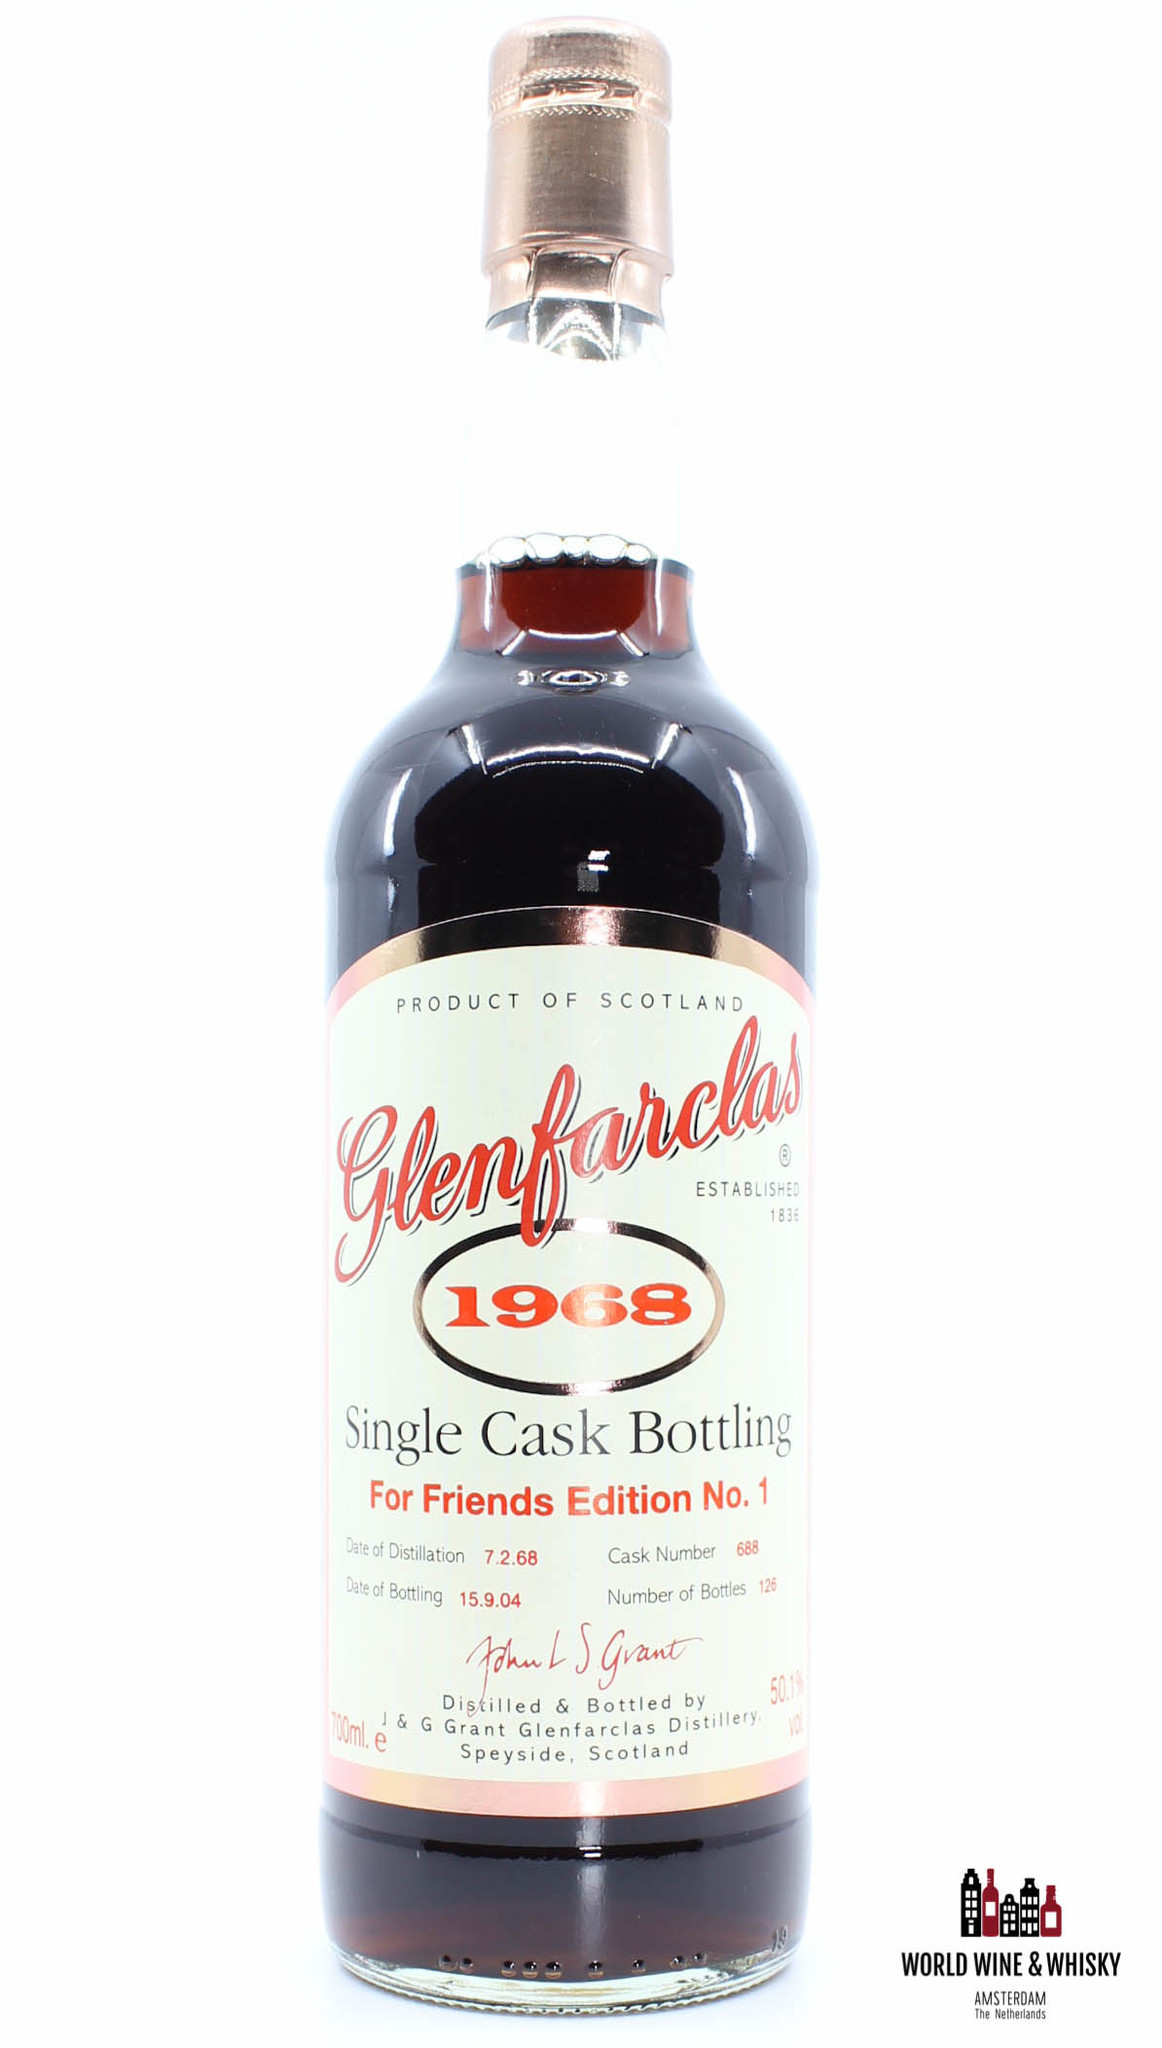 Glenfarclas Glenfarclas 36 Years Old 1968 2004 - Cask 688 - For Friends Edition No. 1 50.1%